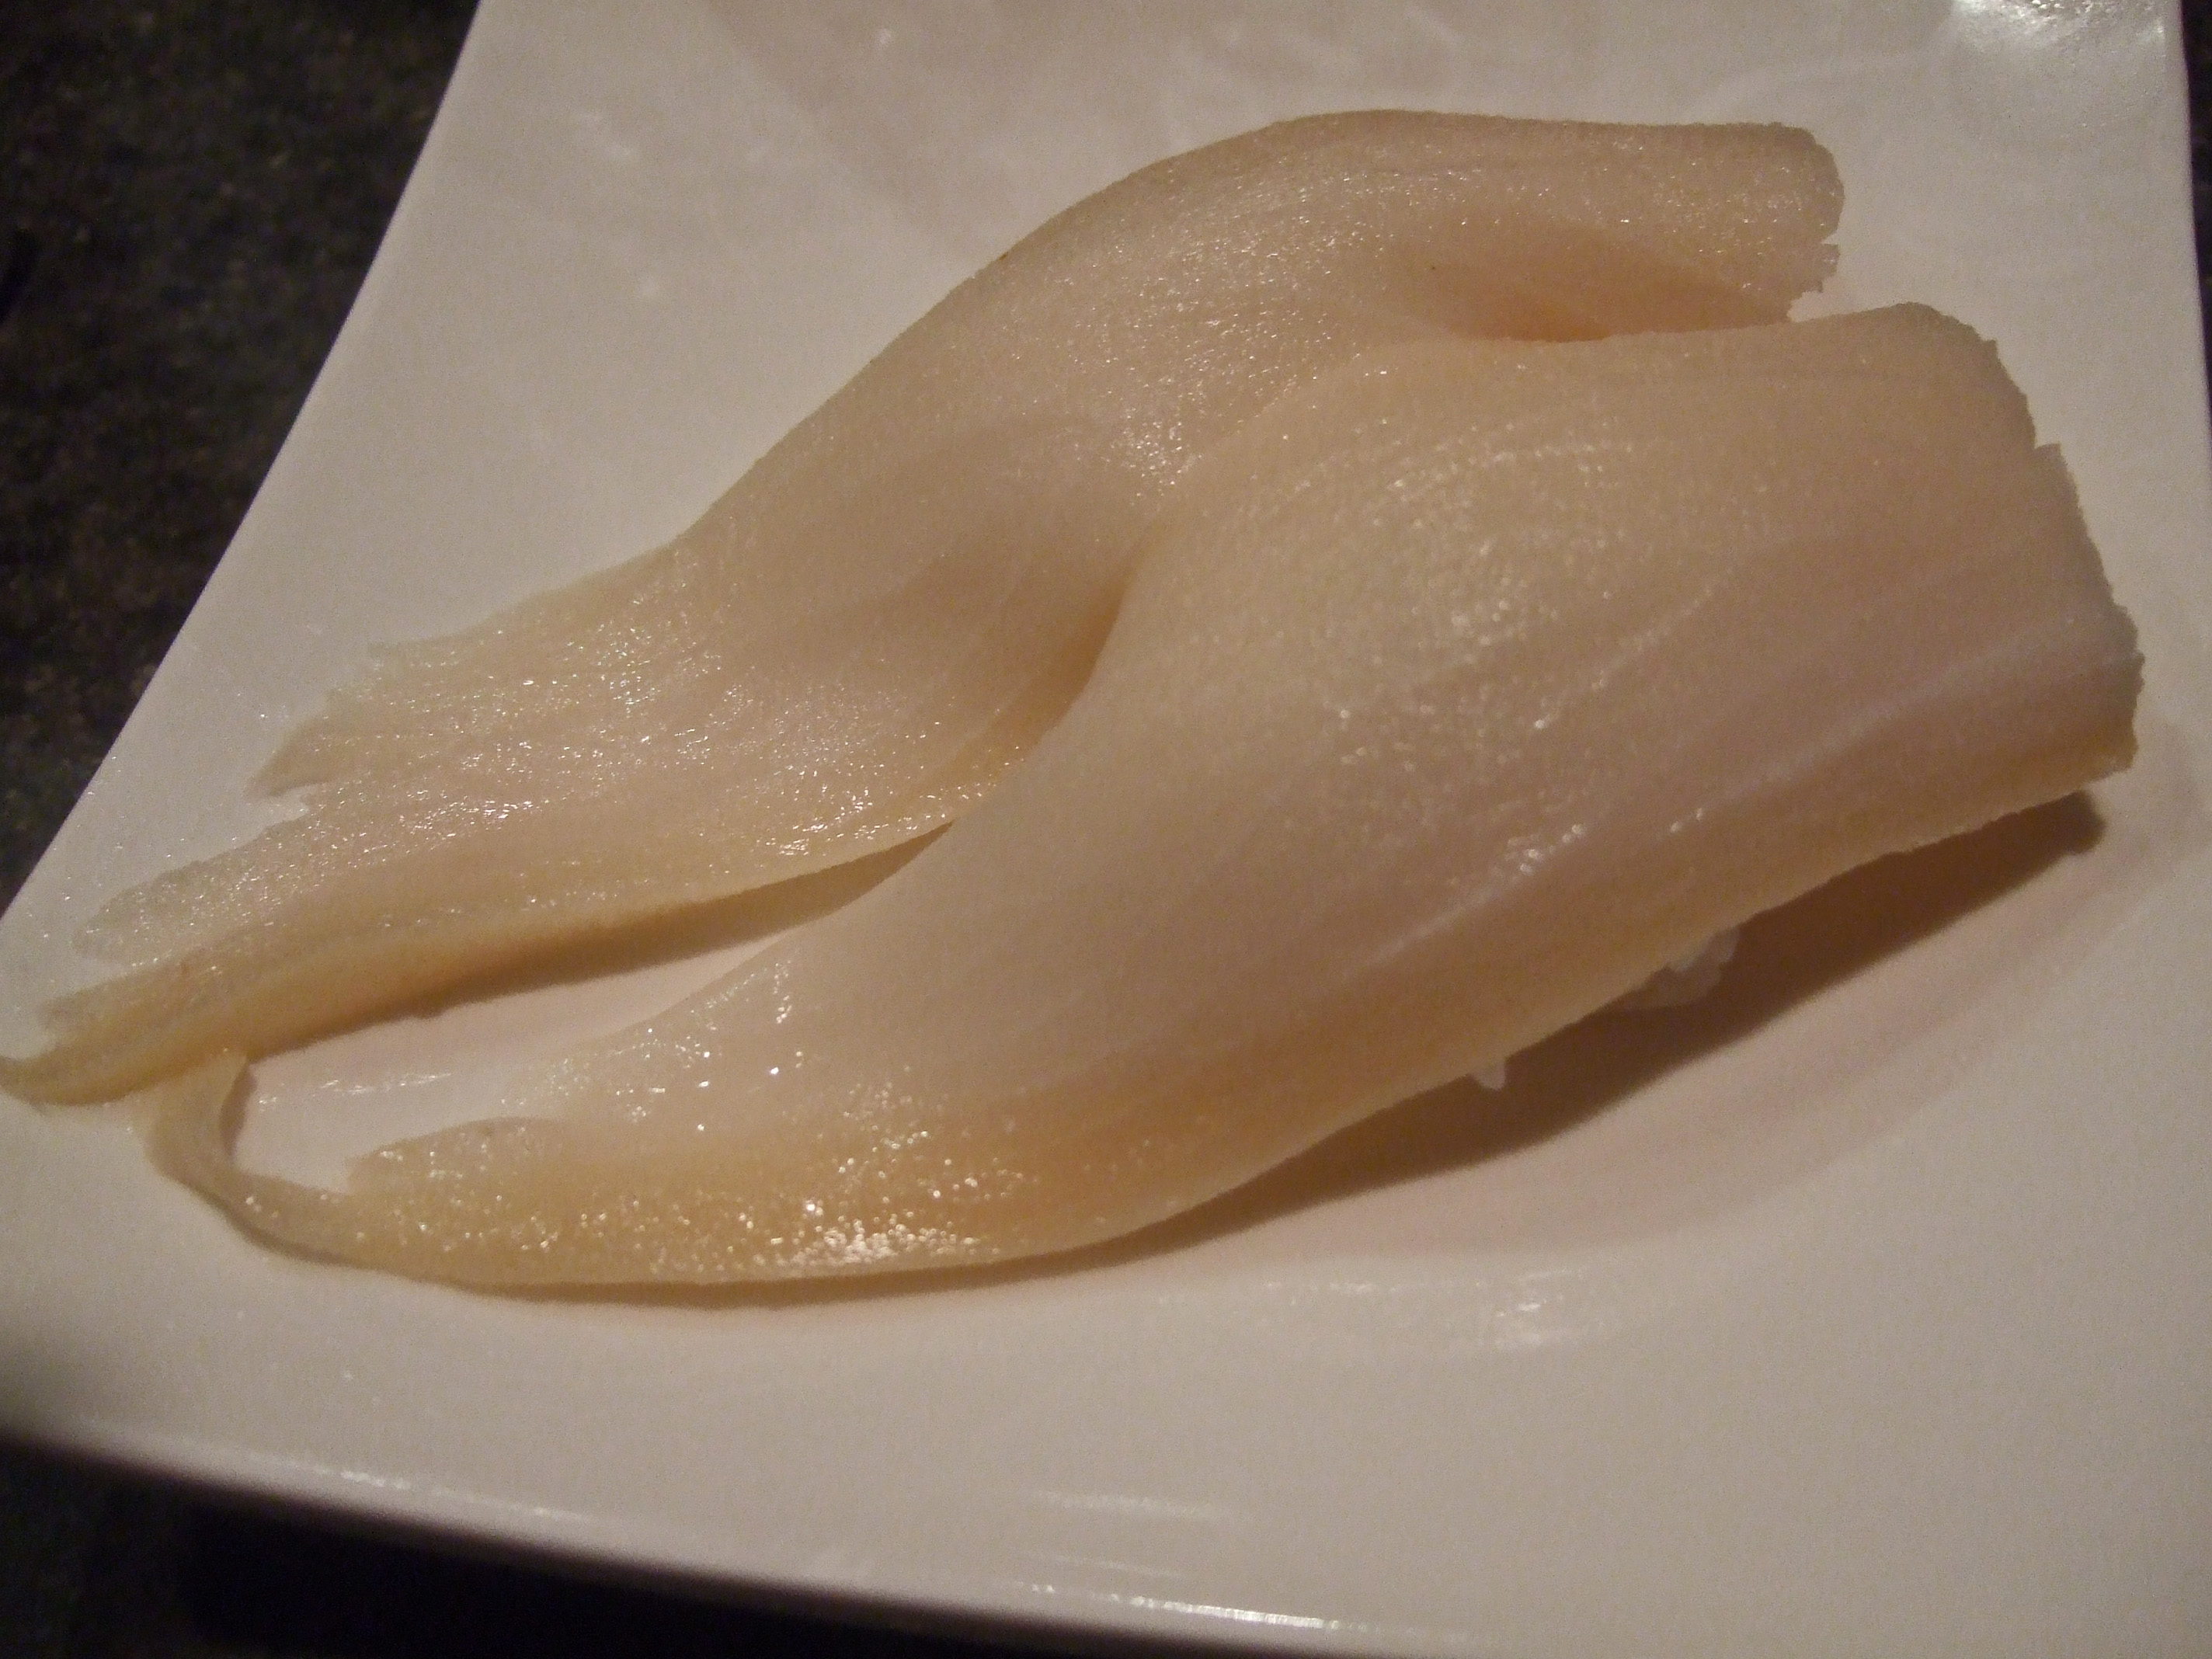 Butterfish and anal leakage